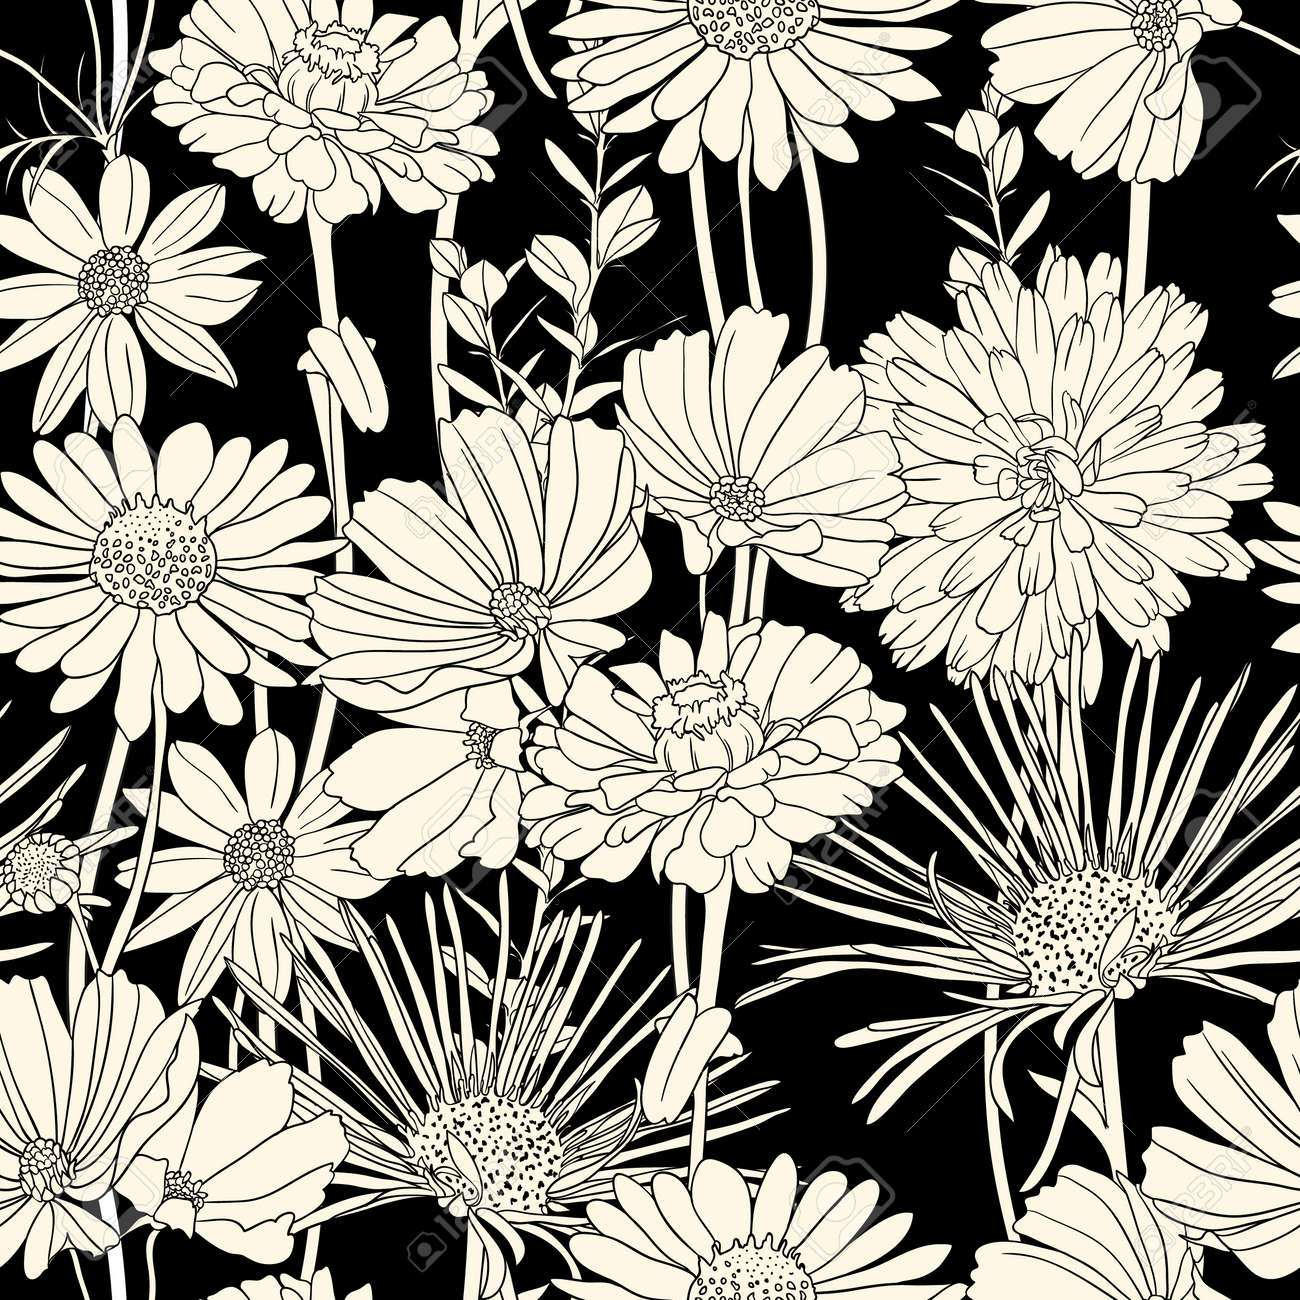 Floral seamless pattern with hand drawn flowers black and white floral seamless pattern with hand drawn flowers black and white stock vector 11964903 mightylinksfo